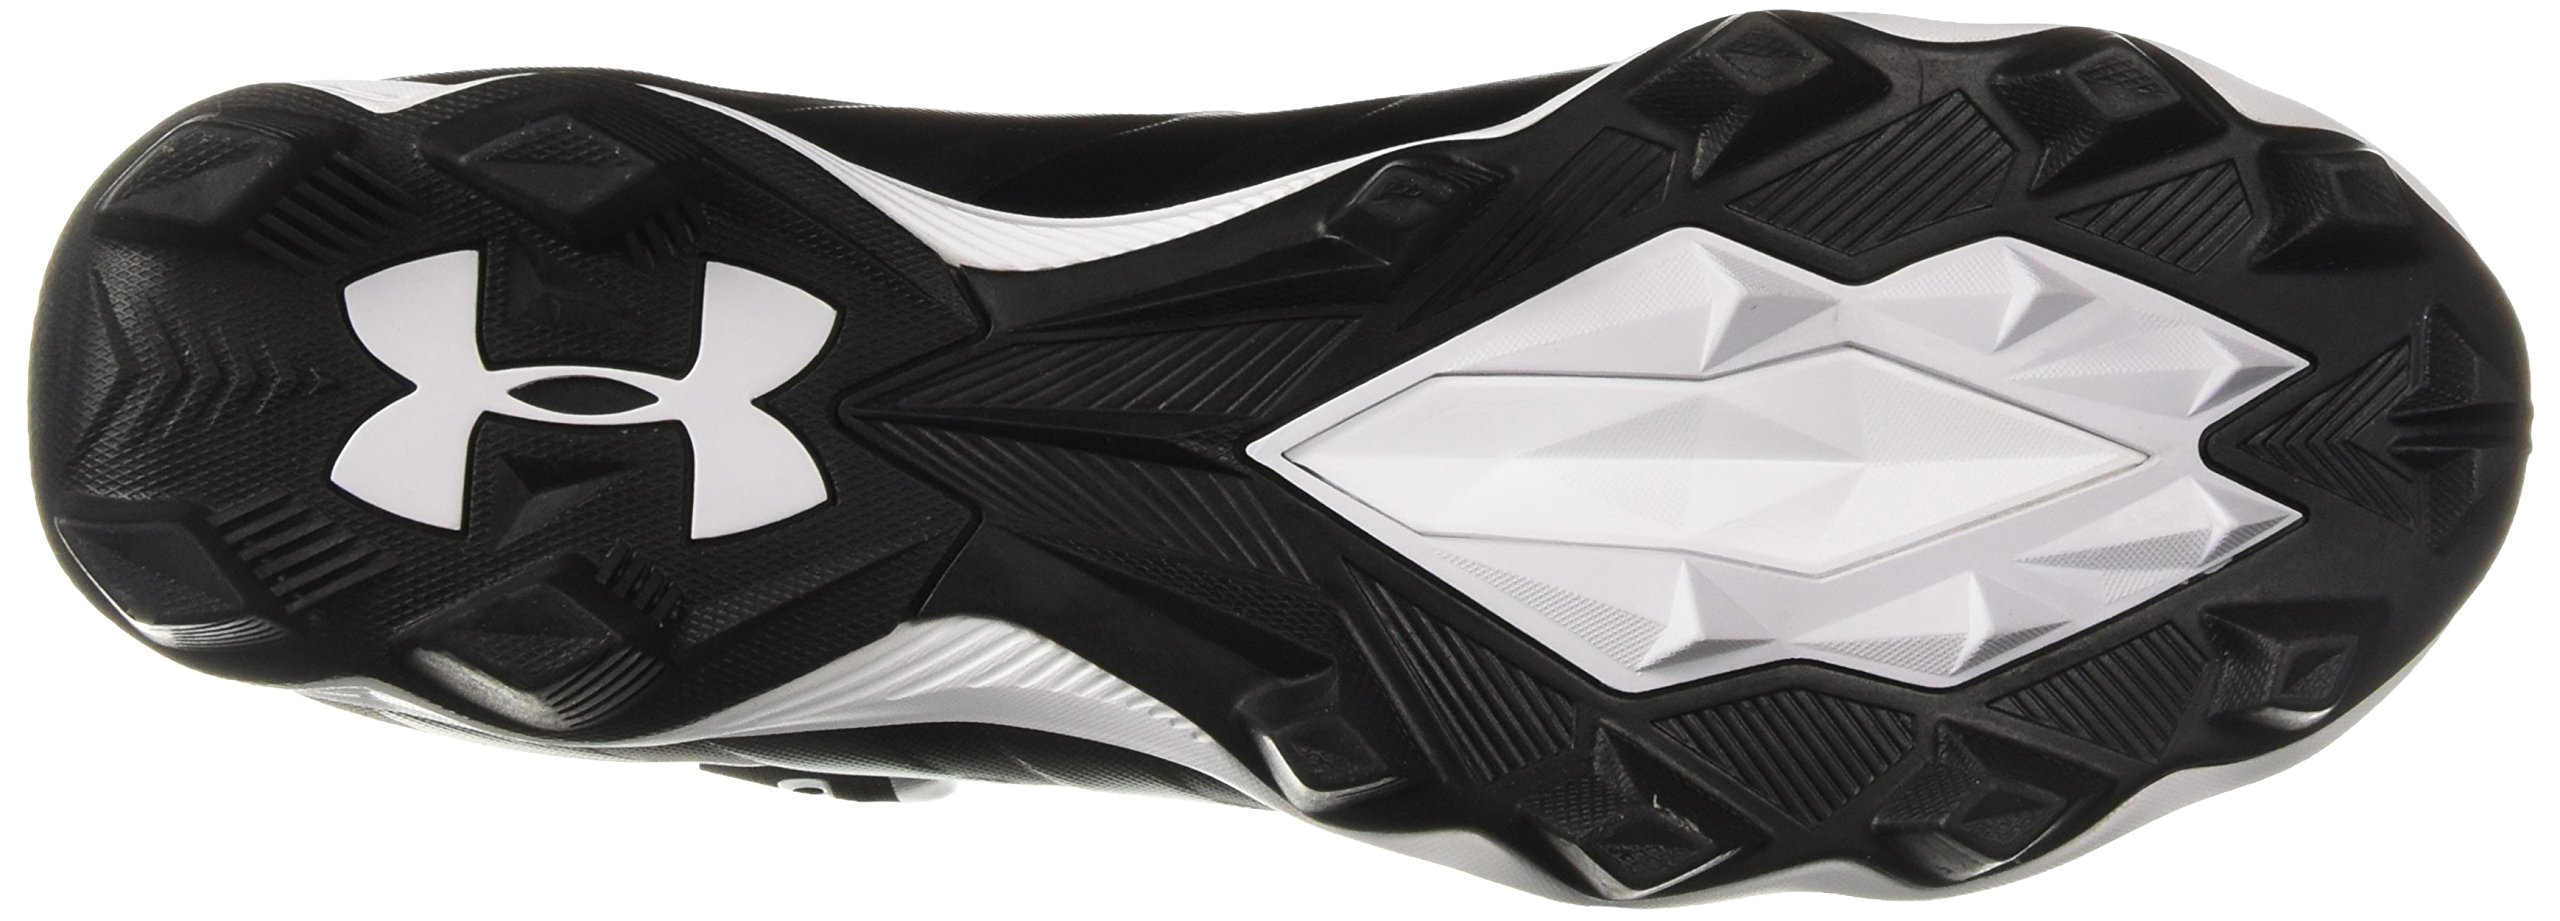 Under Armour Men's Renegade RM Wide Football Shoe 002/Black, 11 W US by Under Armour (Image #3)